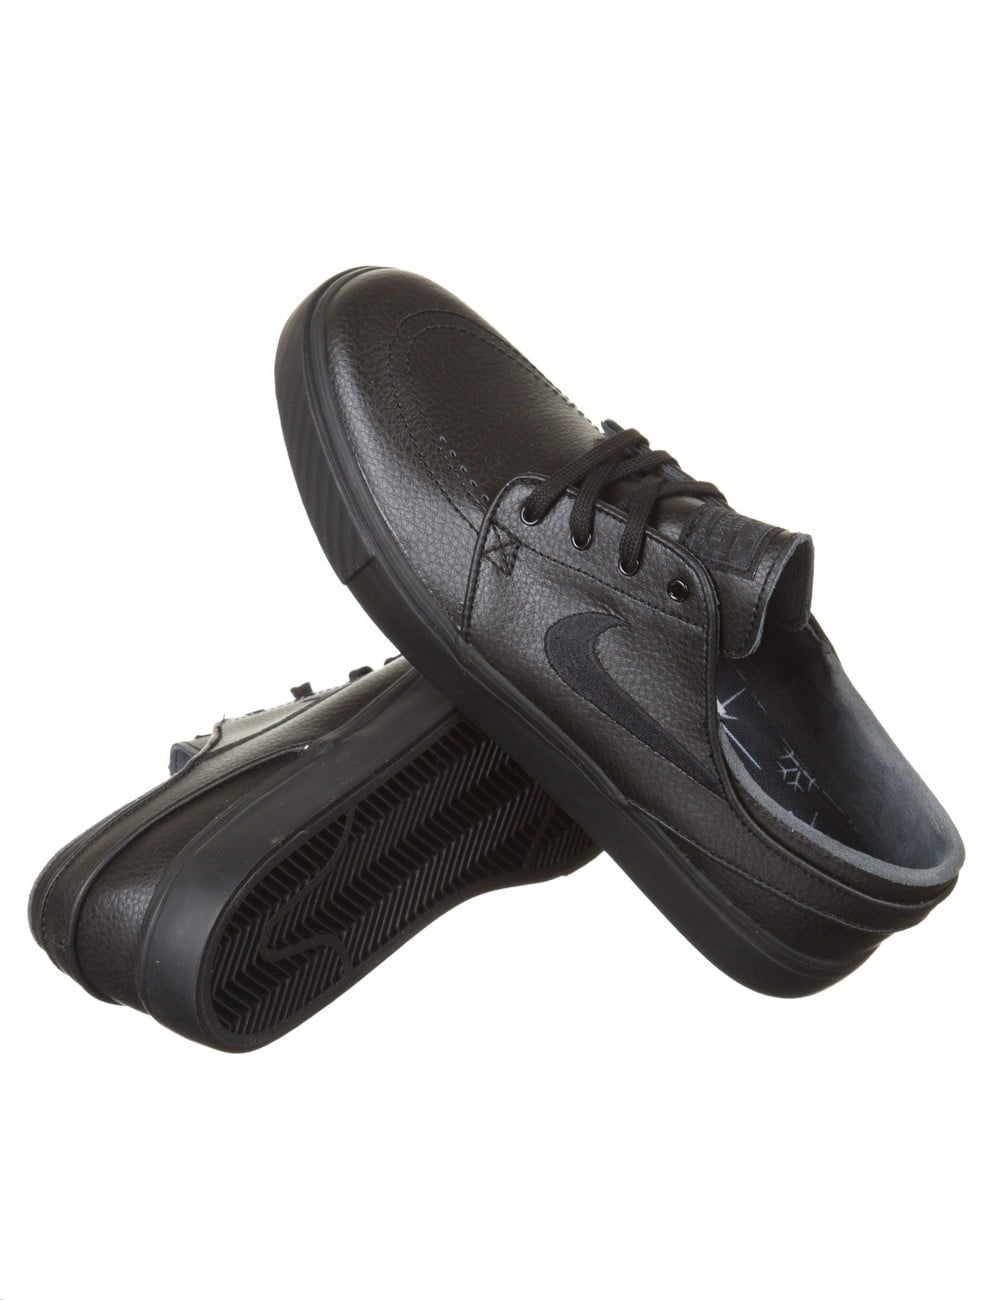 nike all black leather shoes